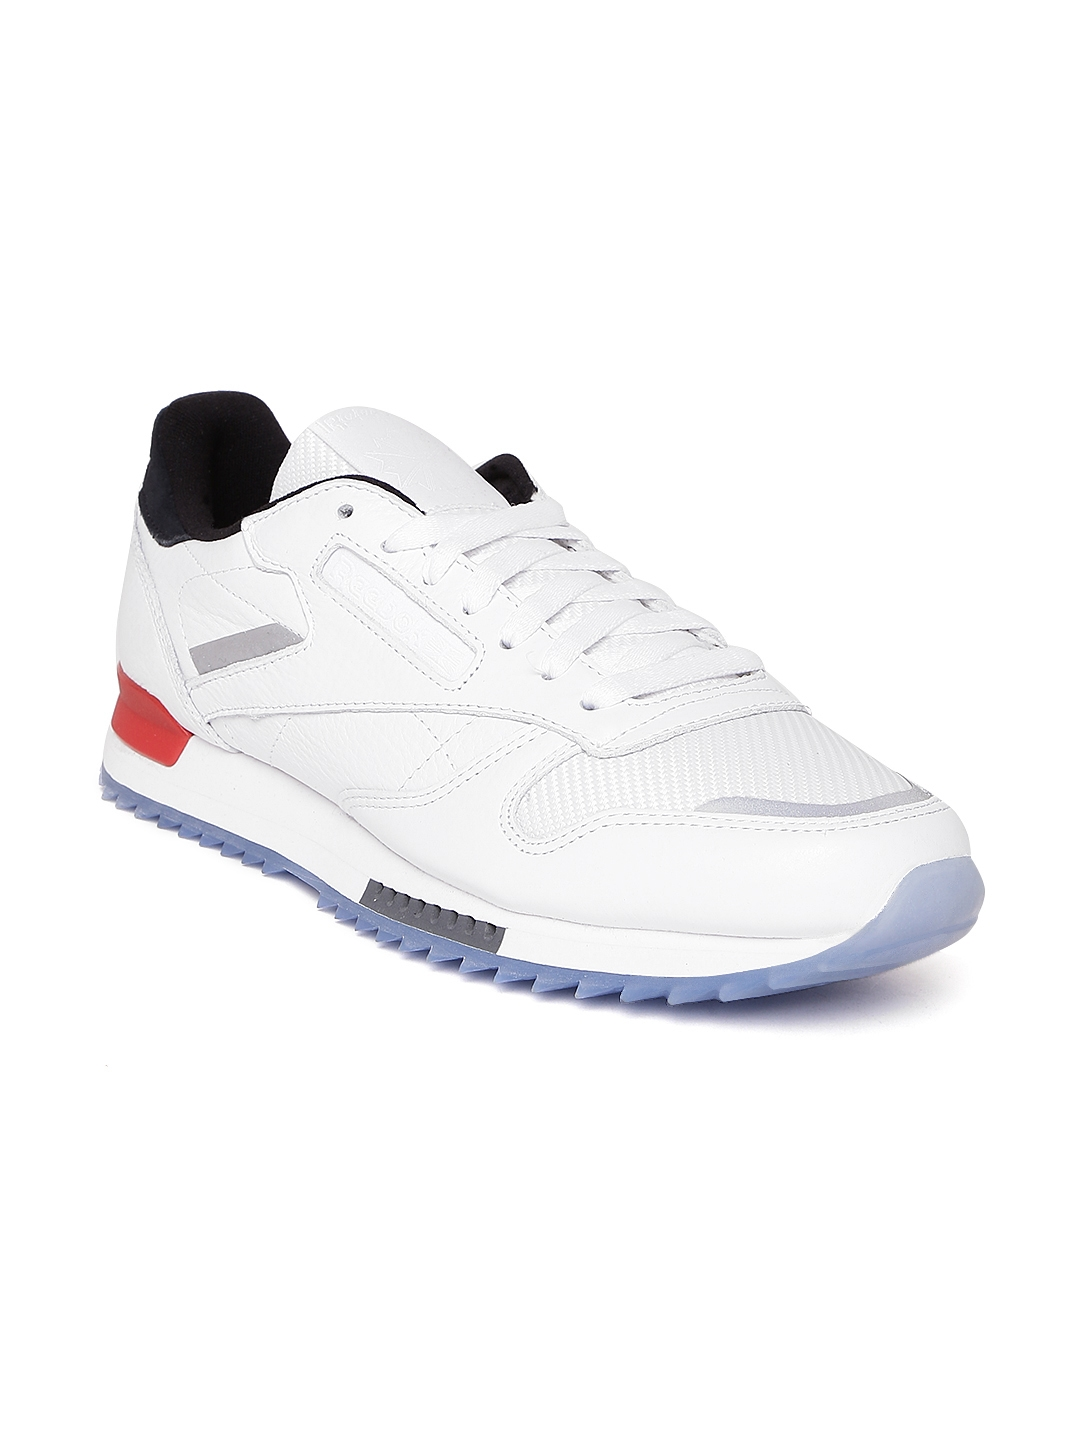 2235b31f336 Buy Reebok Classic Men White CL Leather Ripple BP Sneakers - Casual ...